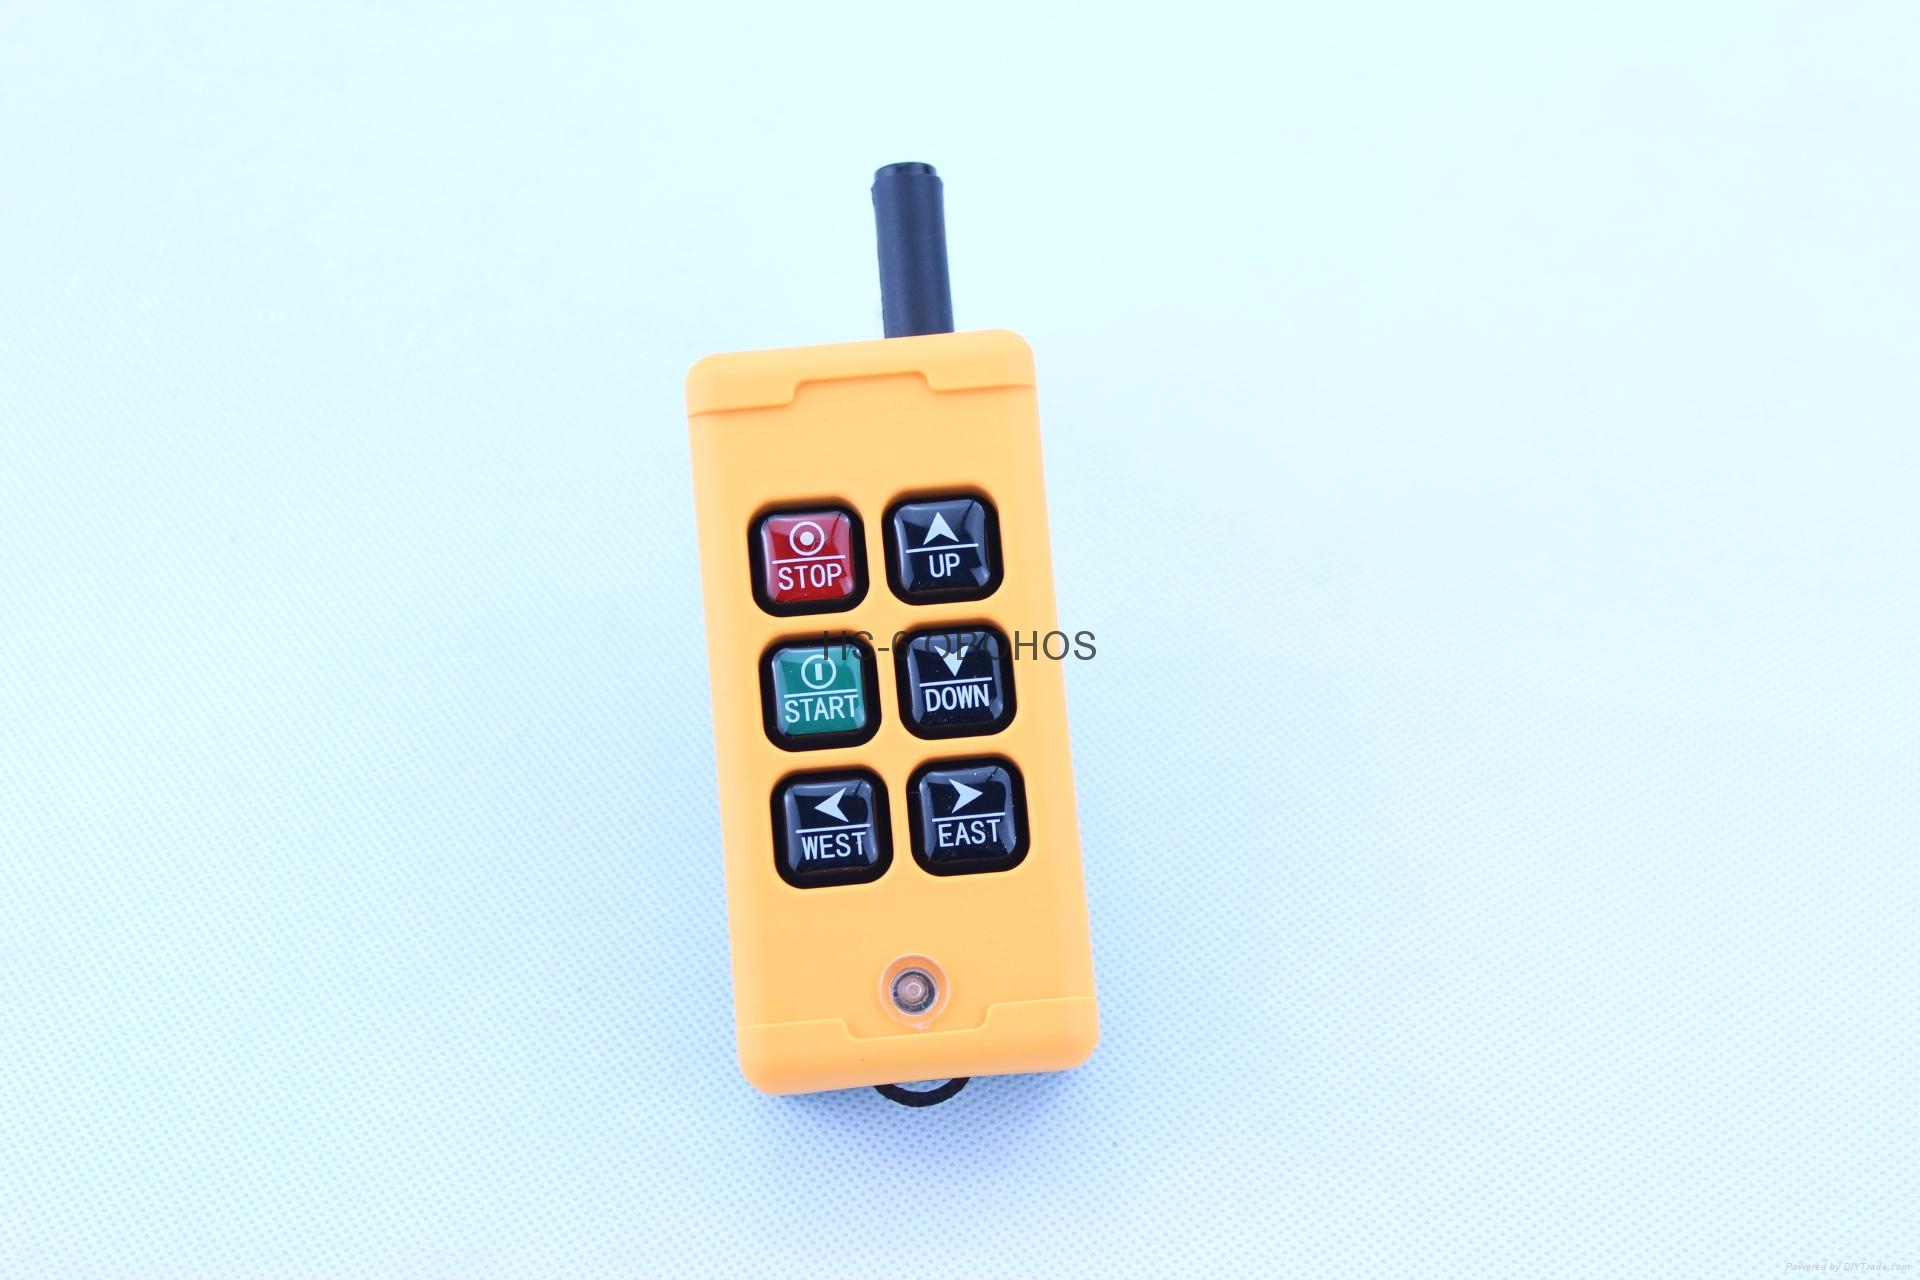 Winch Remote Control Hs 6 Obohos China Manufacturer